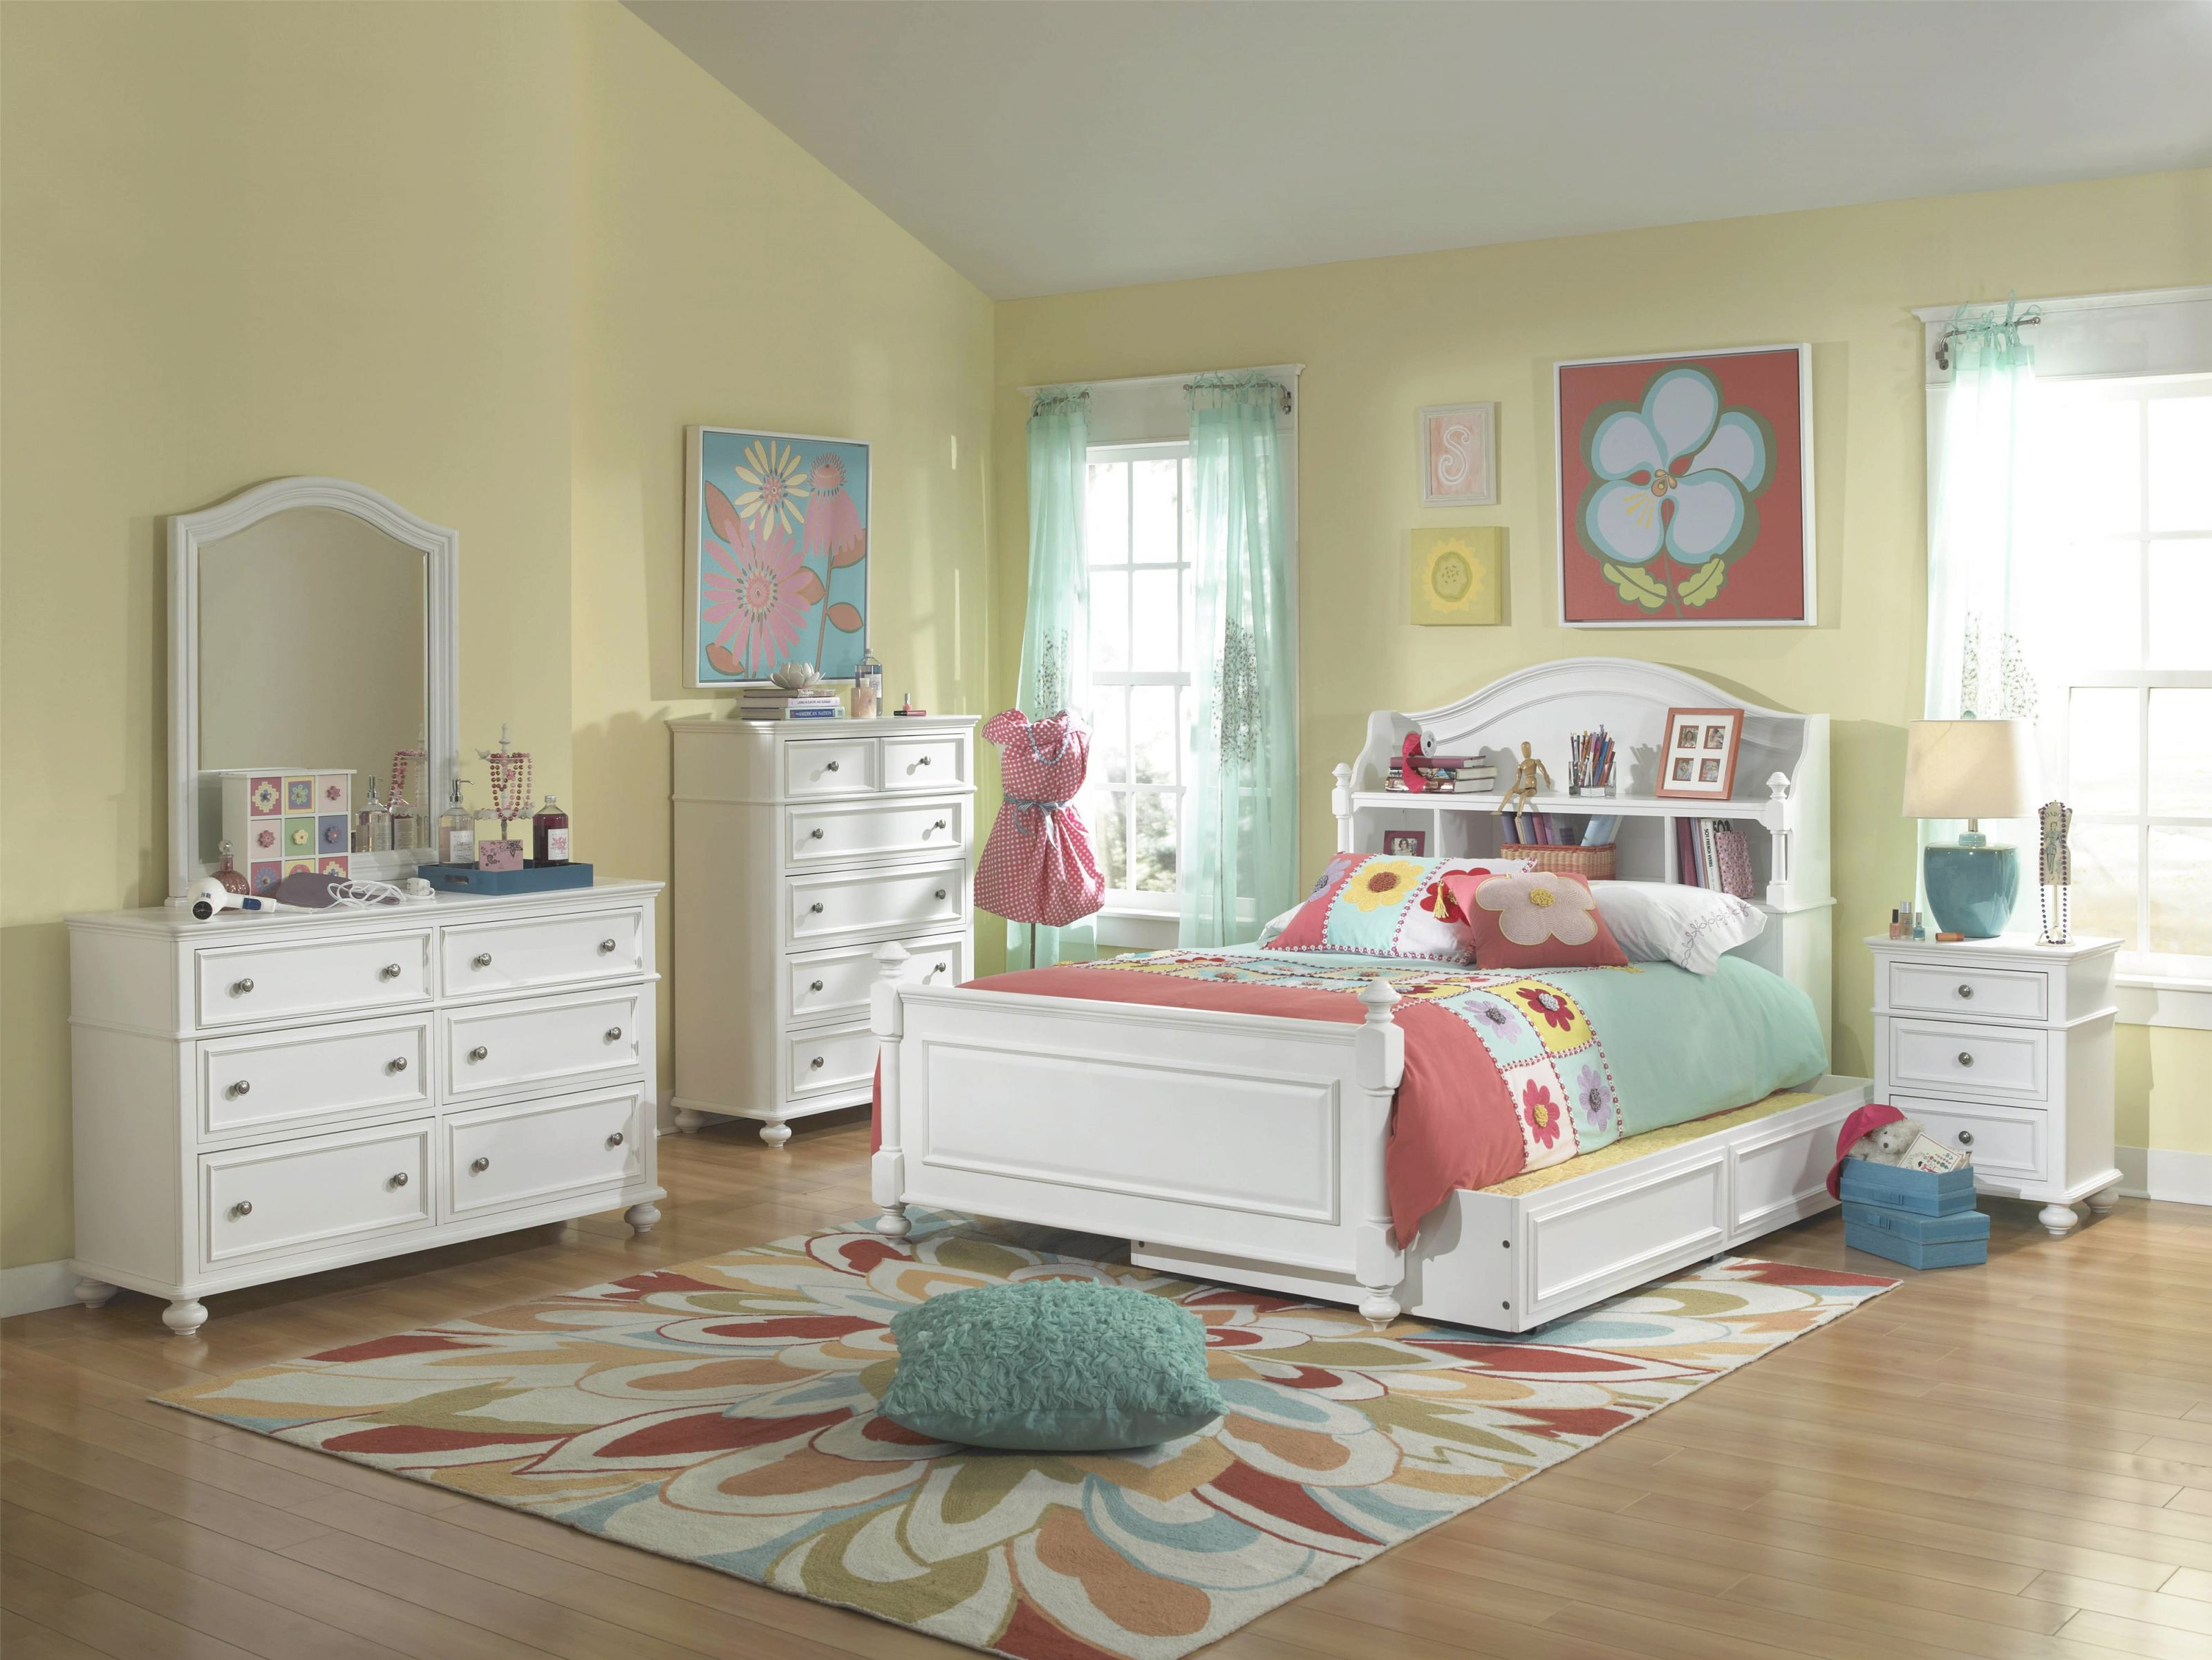 Madison (2830)Legacy Classic Kids – Pilgrim Furniture regarding Full Size Bed With Trundle Bedroom Set